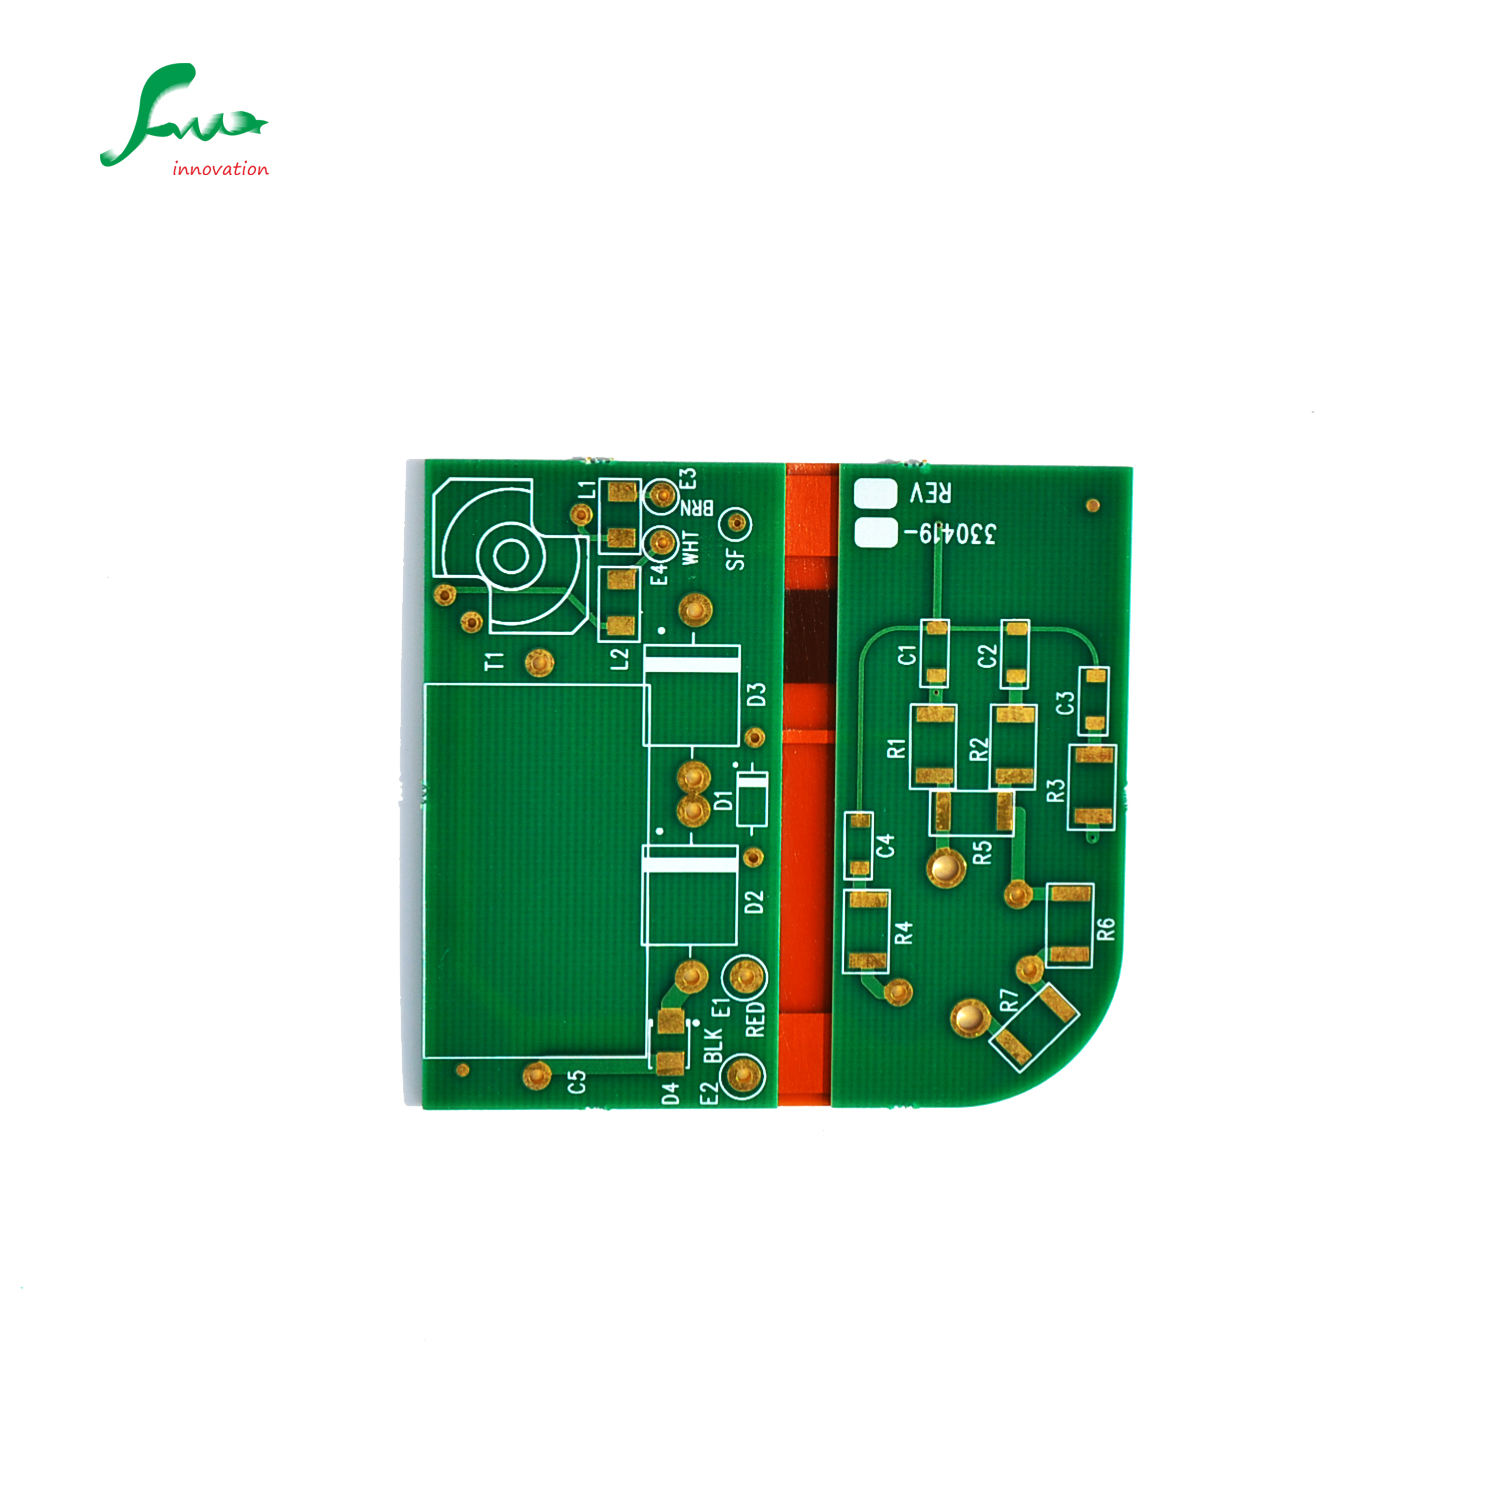 Rigid-flex Pcb [ Boards Pcb Display ] RIGID-FLEX Circuit Boards PCB Assembly For Display